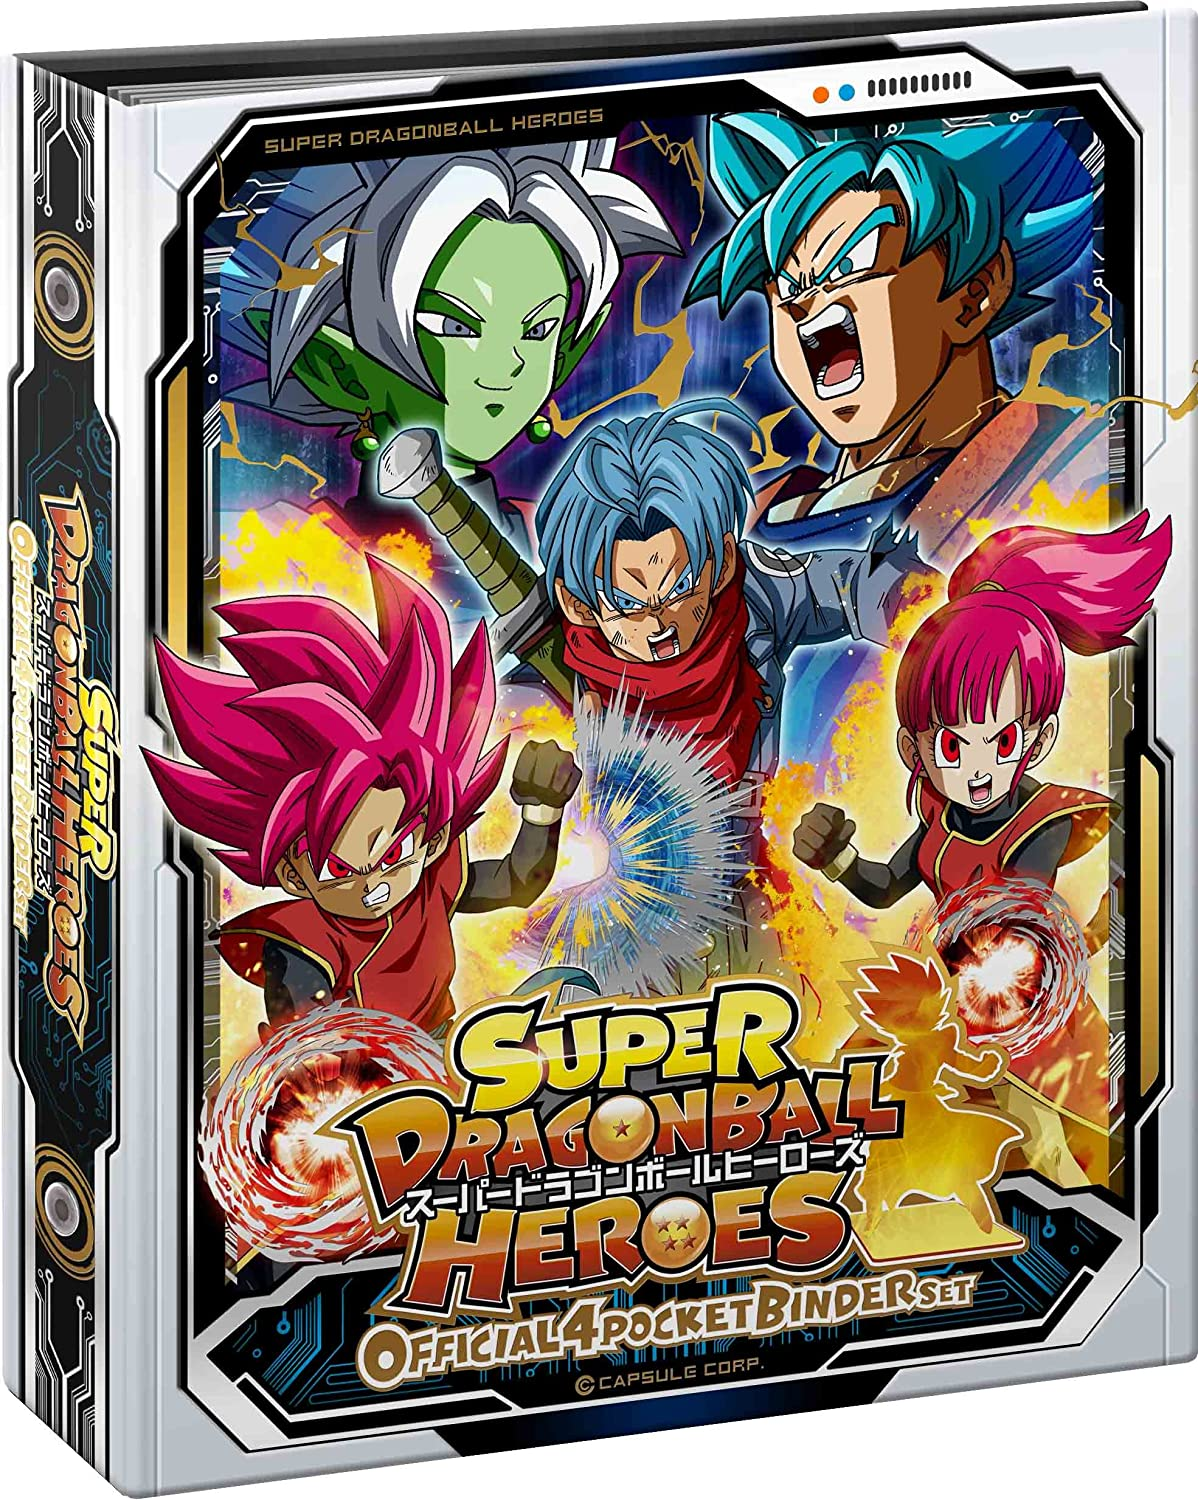 Super Dragon Ball Heroes Official 4 Pocket Binder Set ...